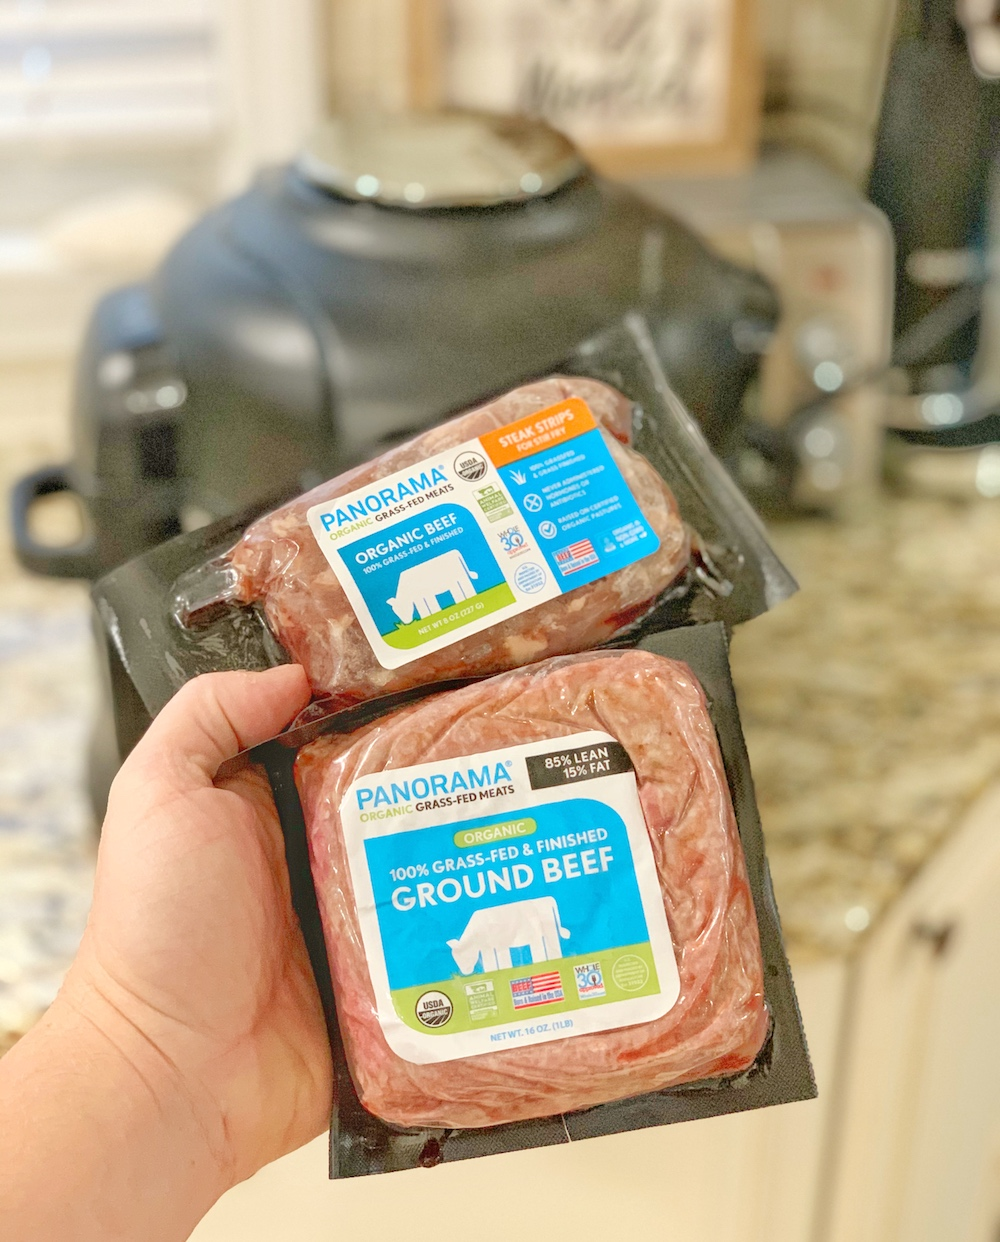 Panorama Grass Fed Meats